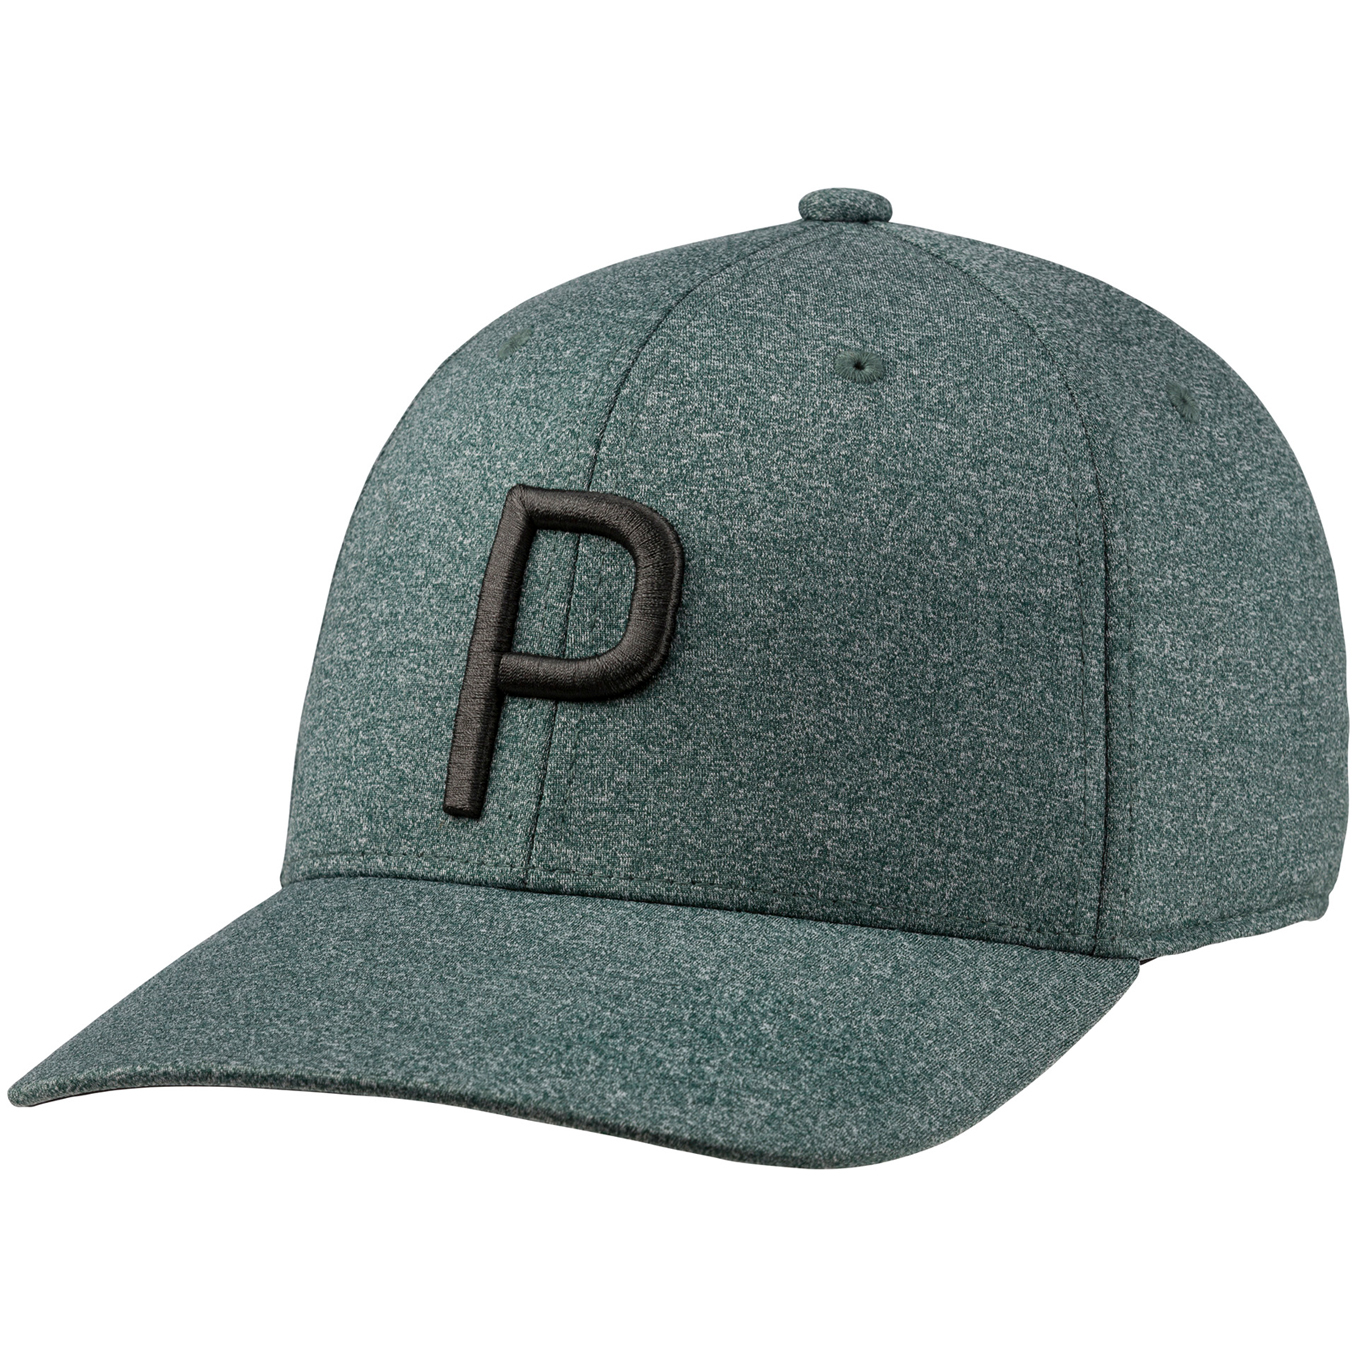 Linked product